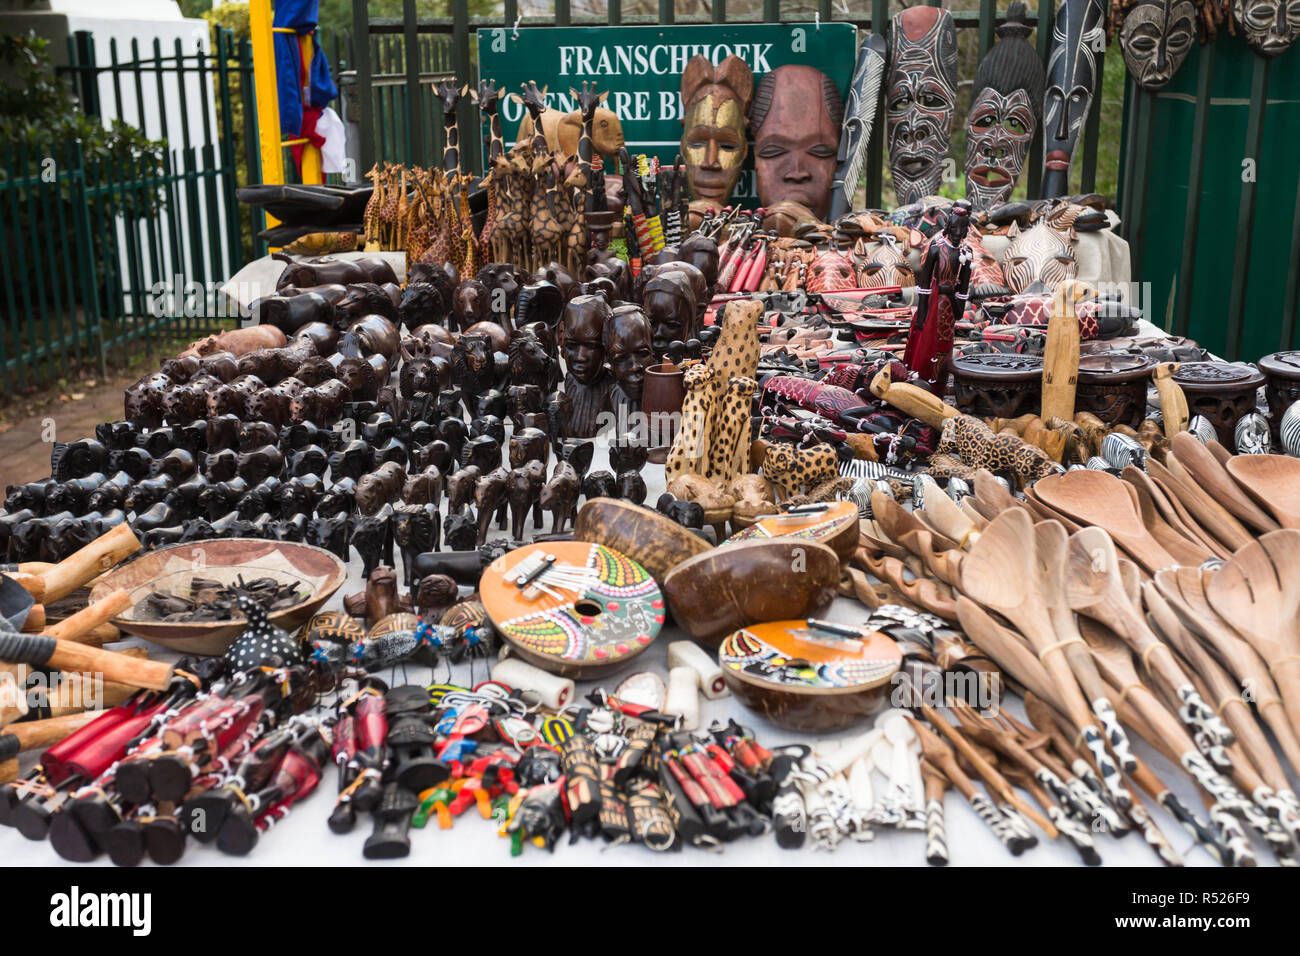 table displaying African curios or souvenirs for sale at street market in Franschhoek, Cape Town - Stock Image